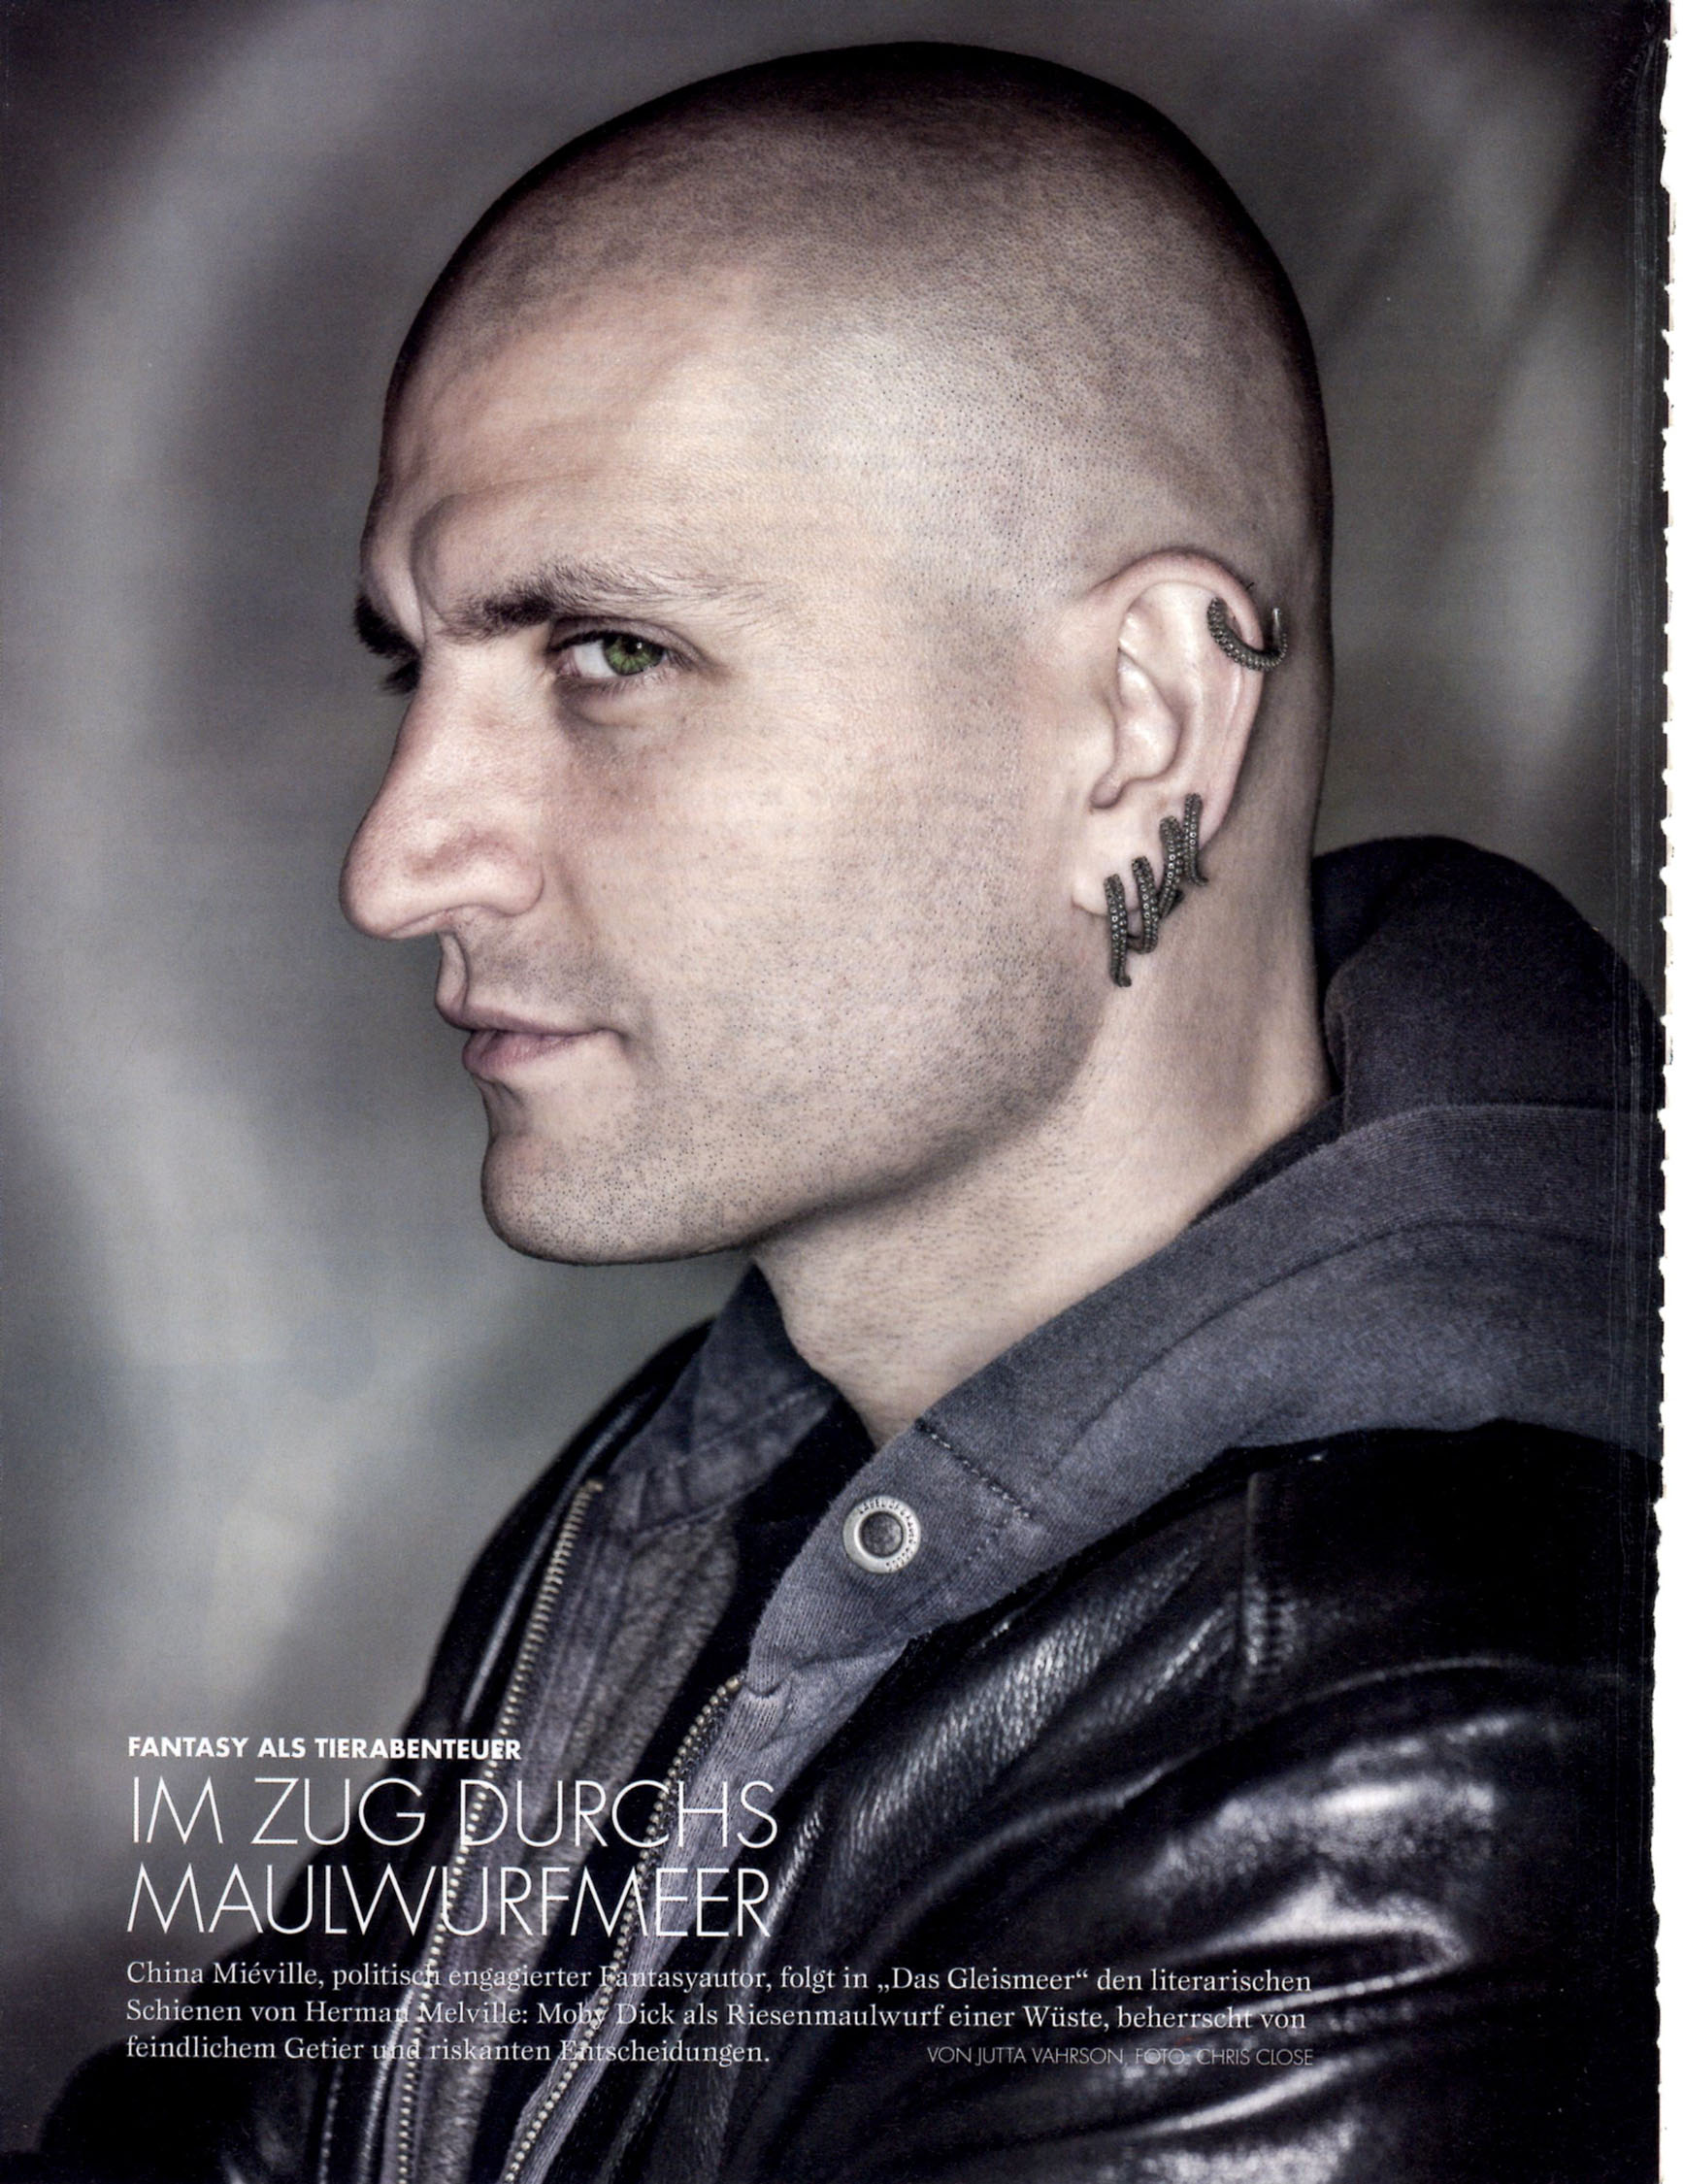 Writer China Miéville from Edinburgh Book Festval photography exhibition